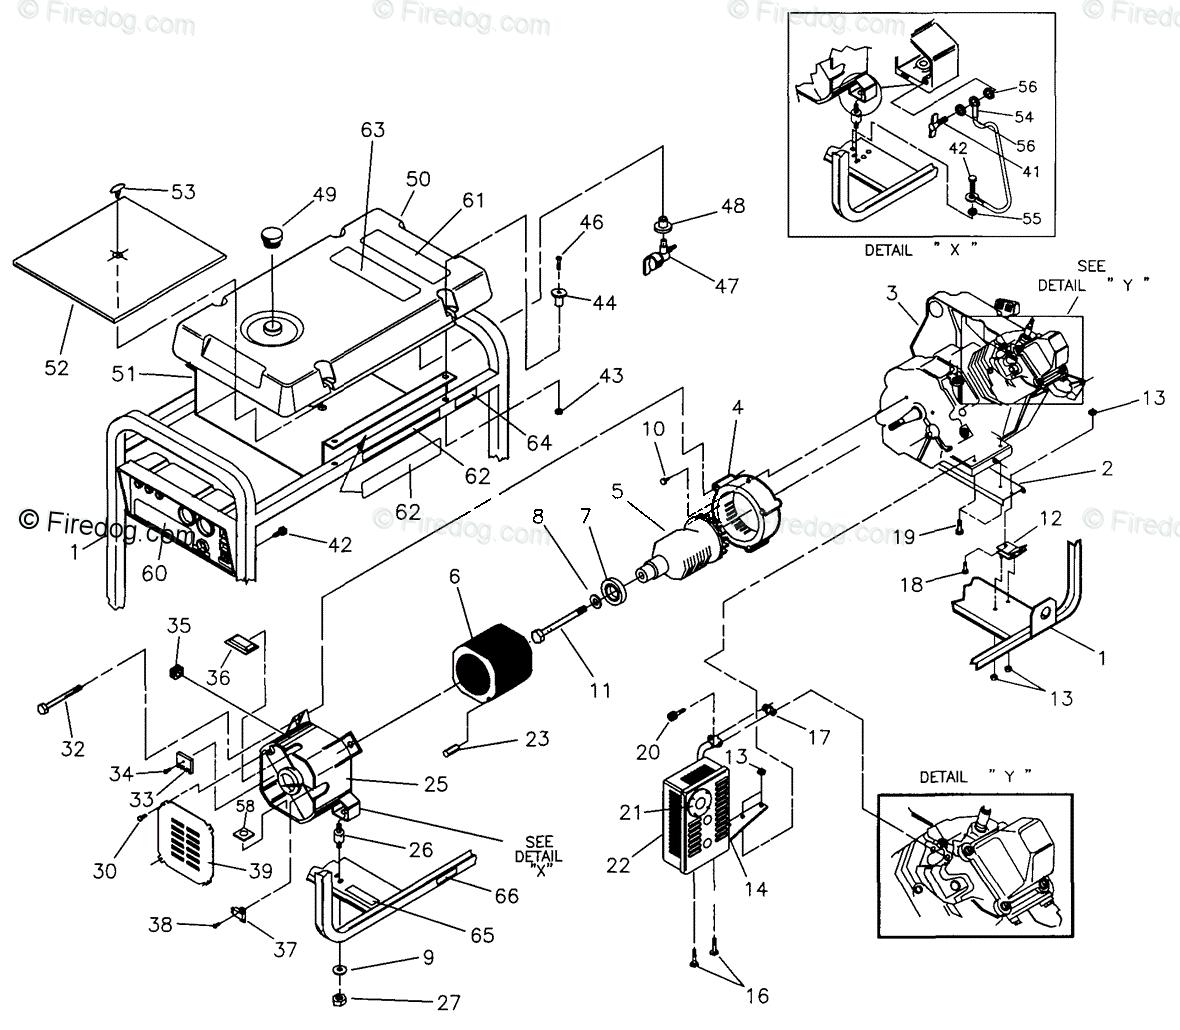 Wiring Diagram Database: Briggs And Stratton Generator